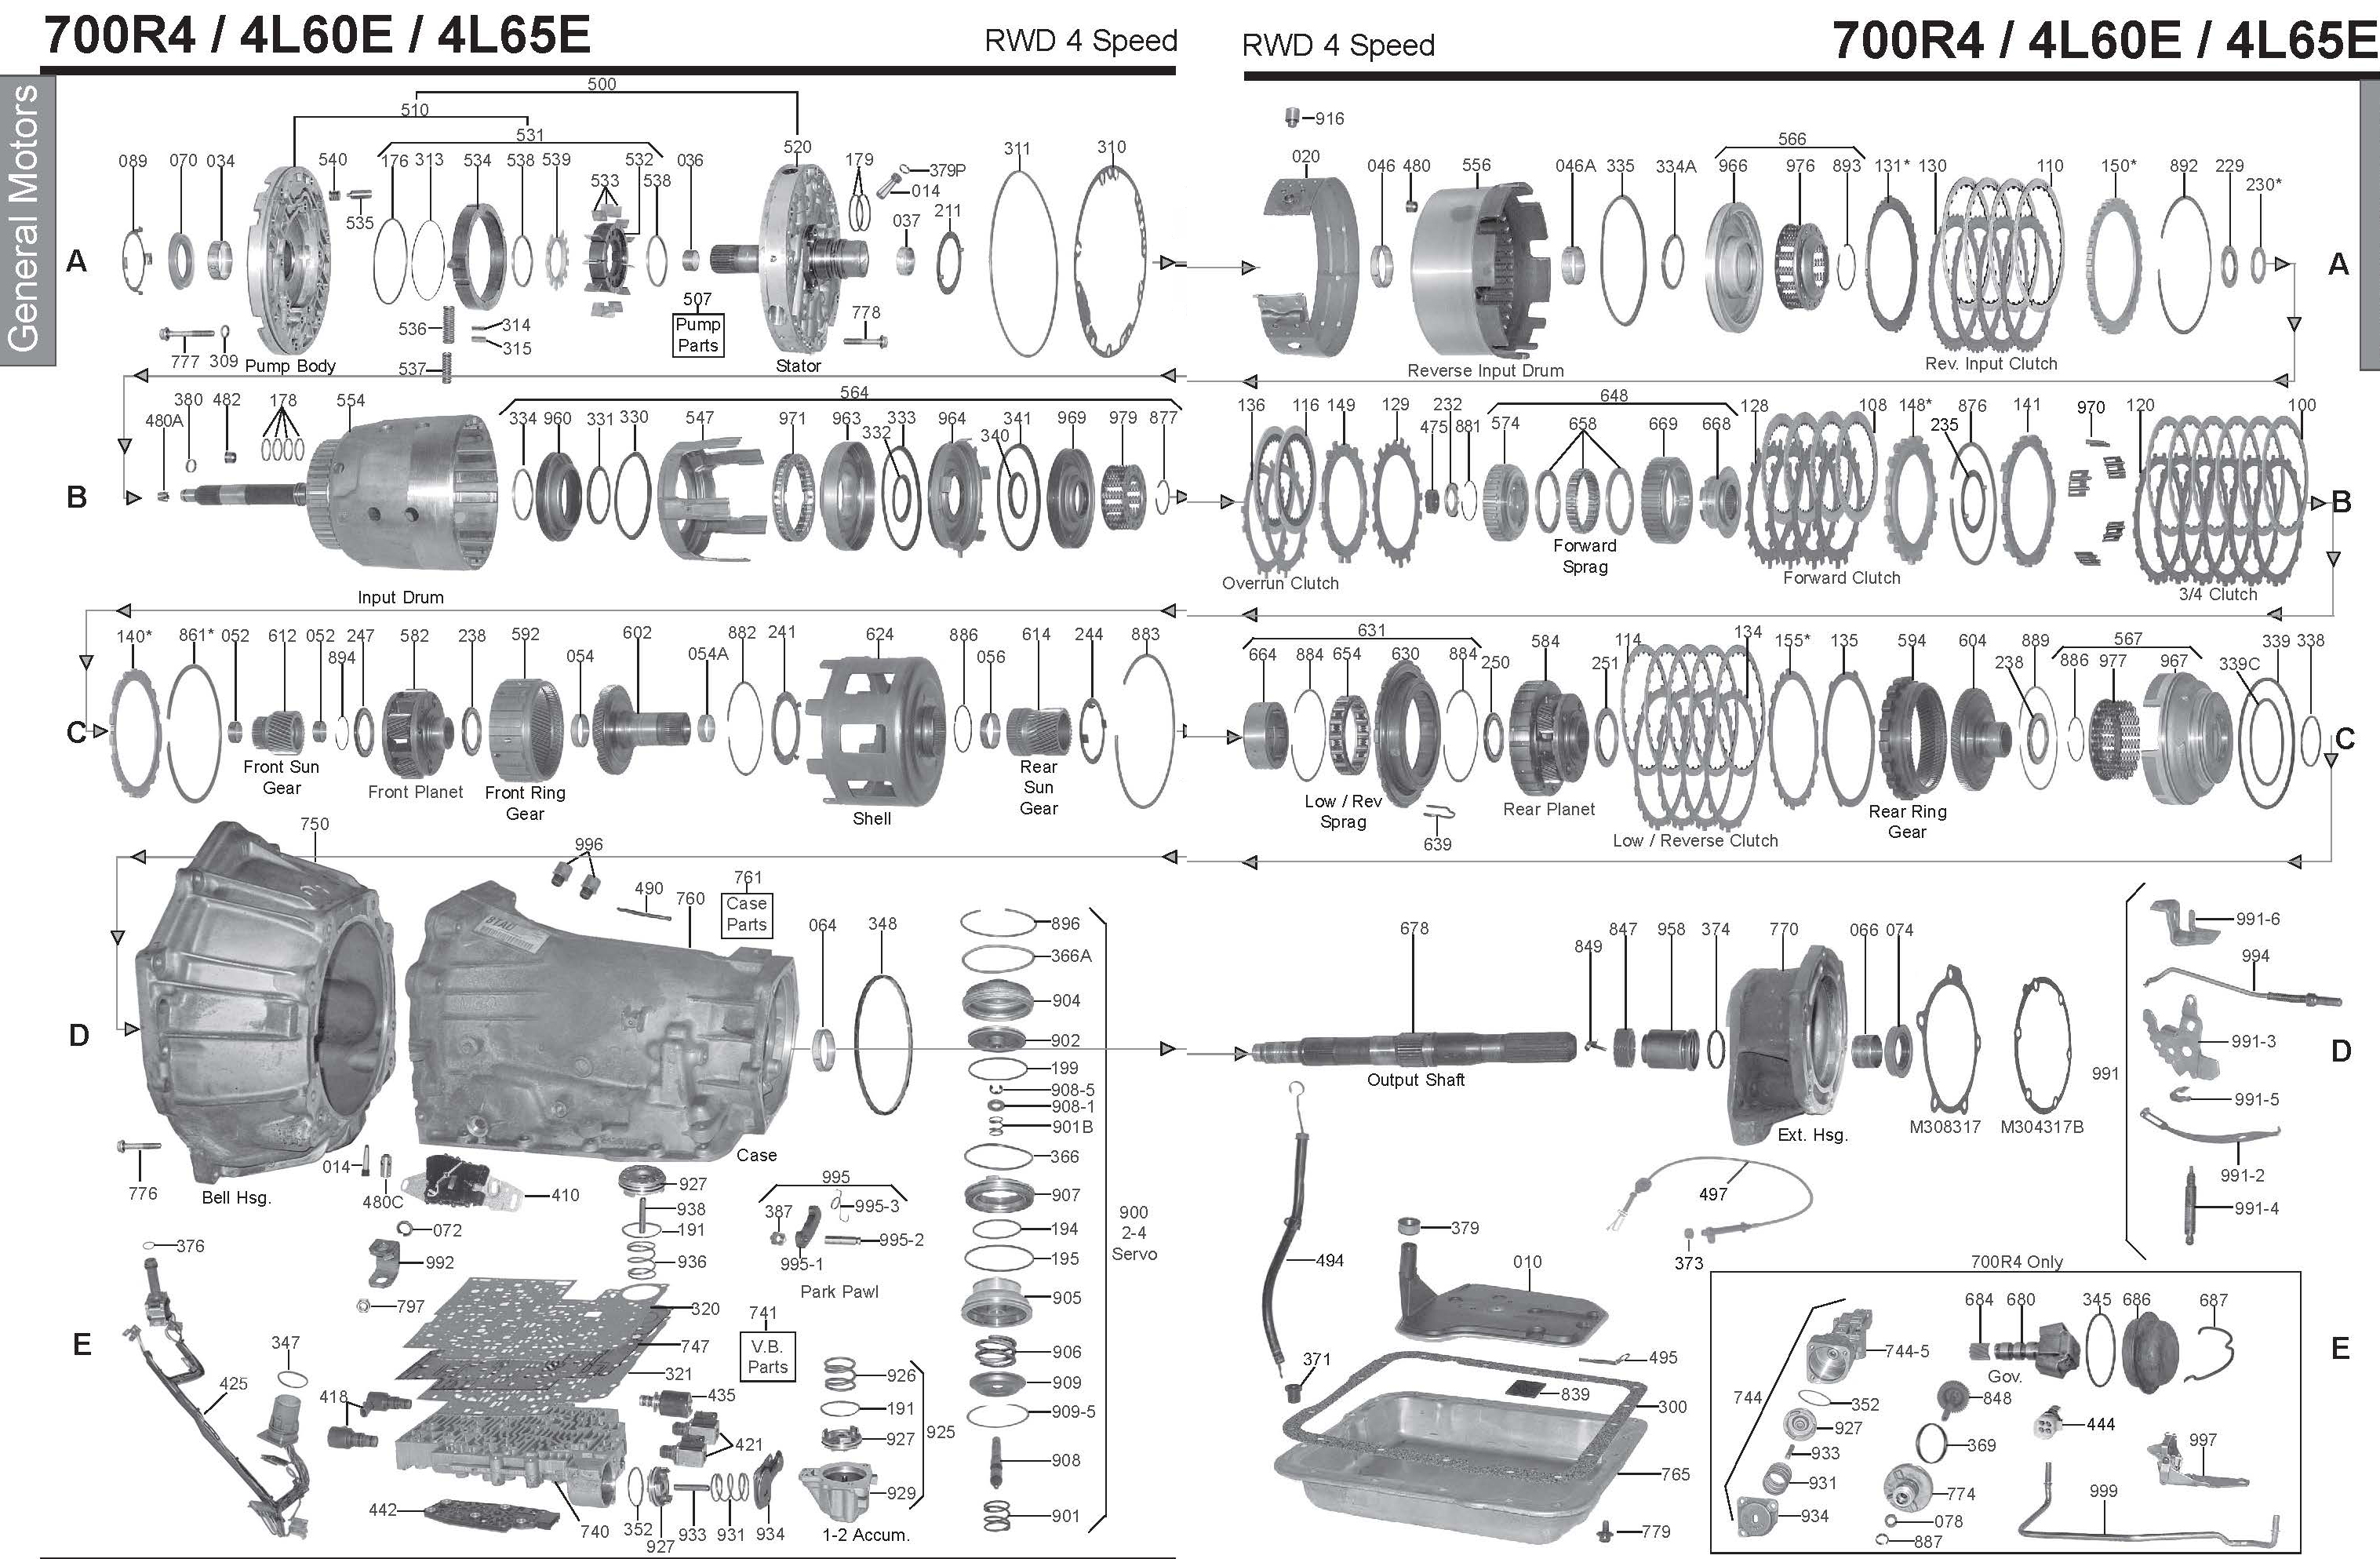 4t60e Transmission Schematic on 2002 Buick Lesabre Transmission Diagram